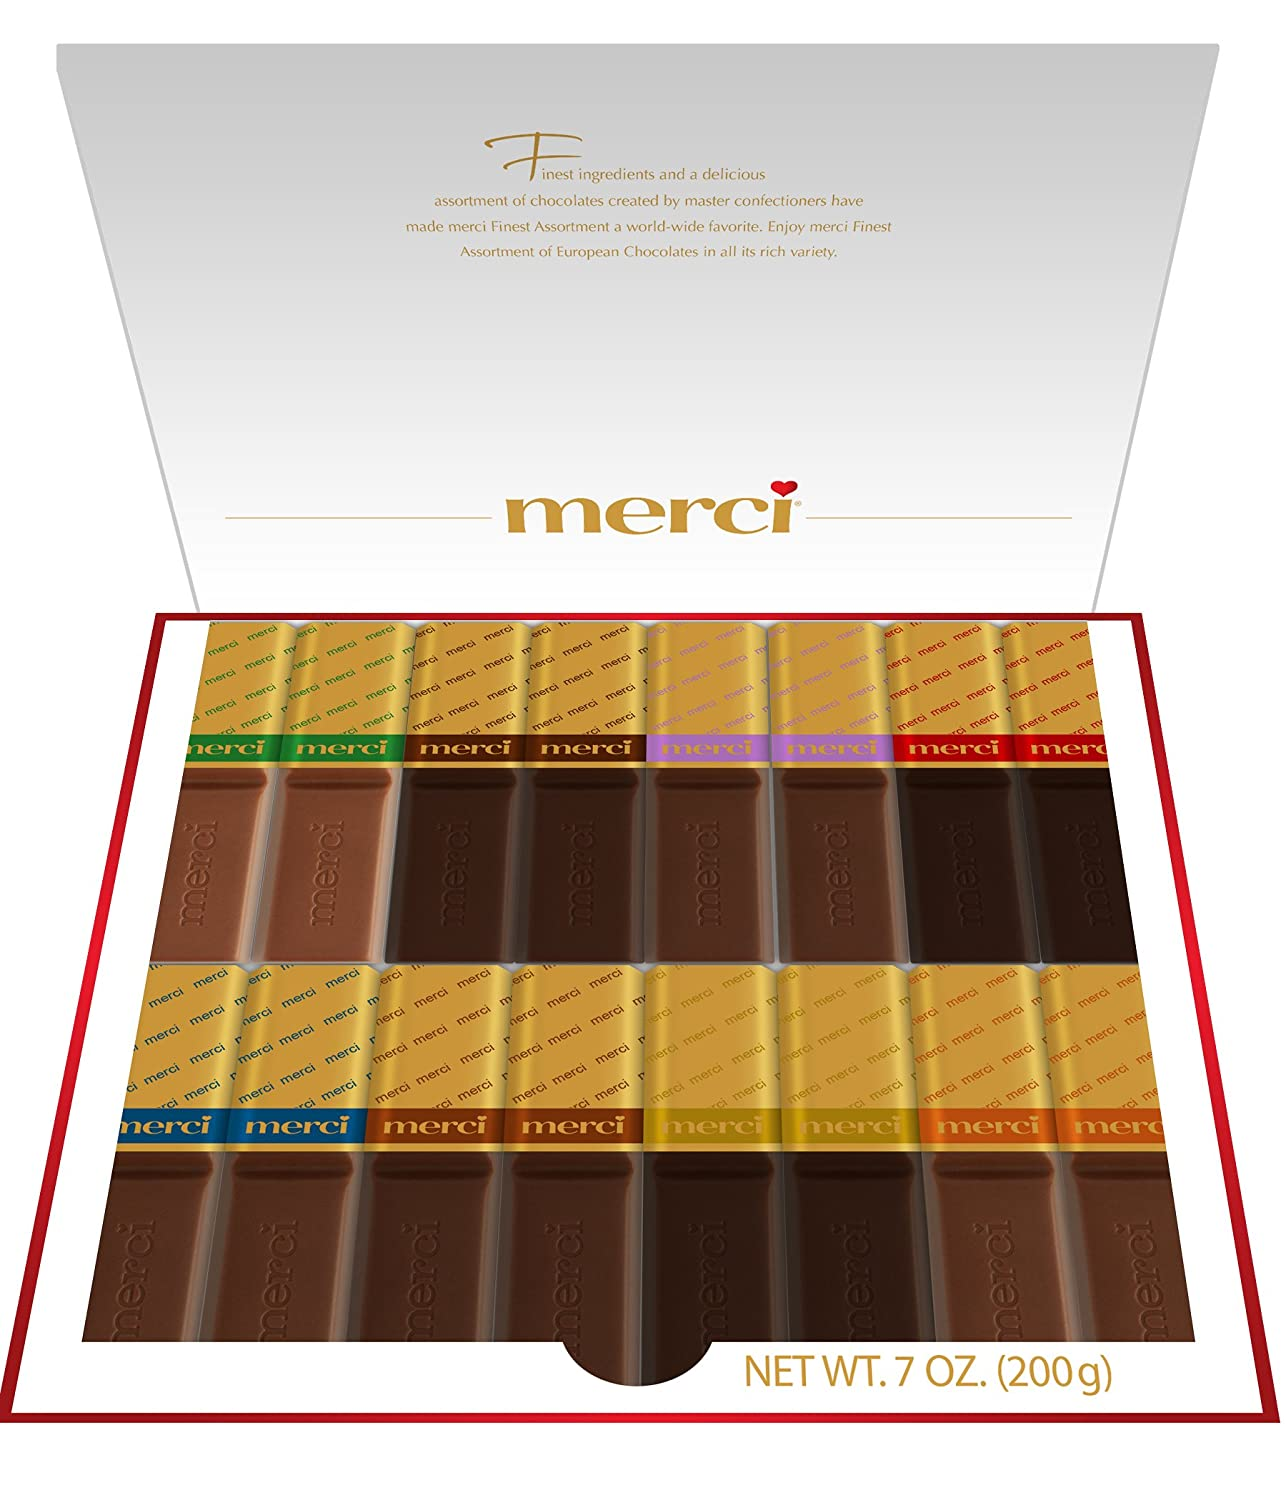 Amazon.com : Merci Finest Selection, Assorted, 14.1 Ounce (Pack of ...